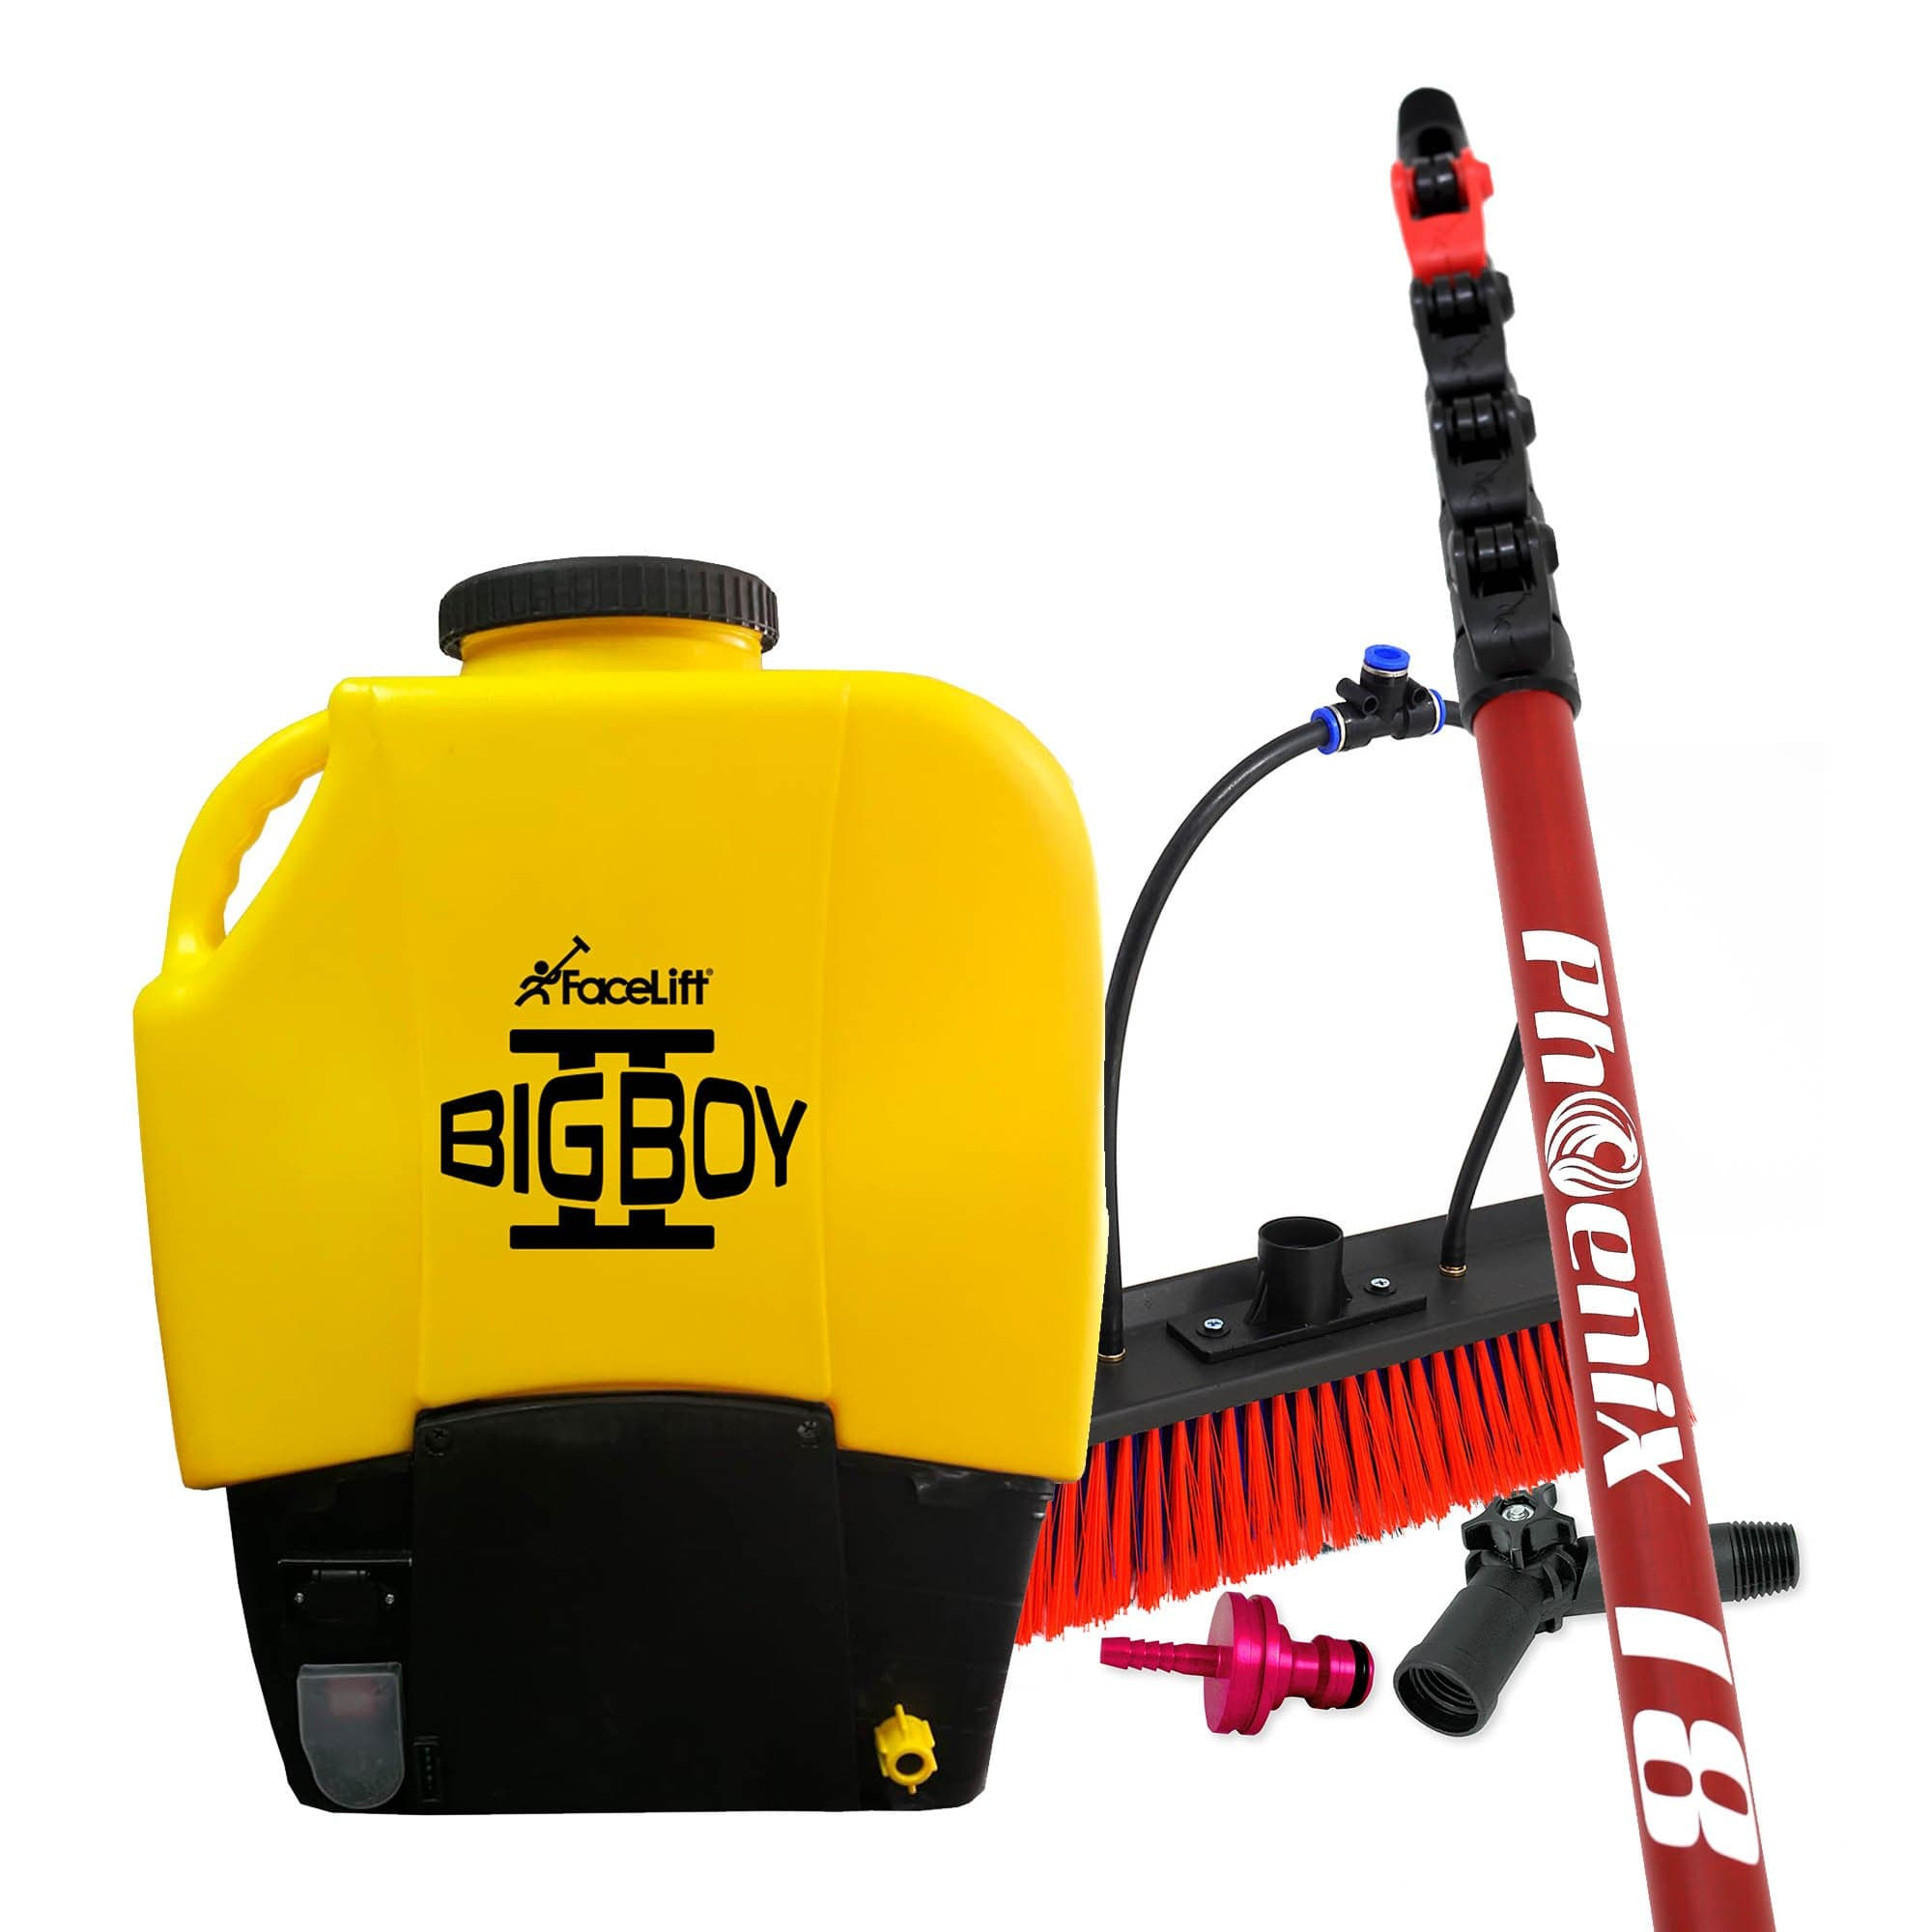 BigBoy 2 Backpack & Phoenix Glass Fibre Bundle